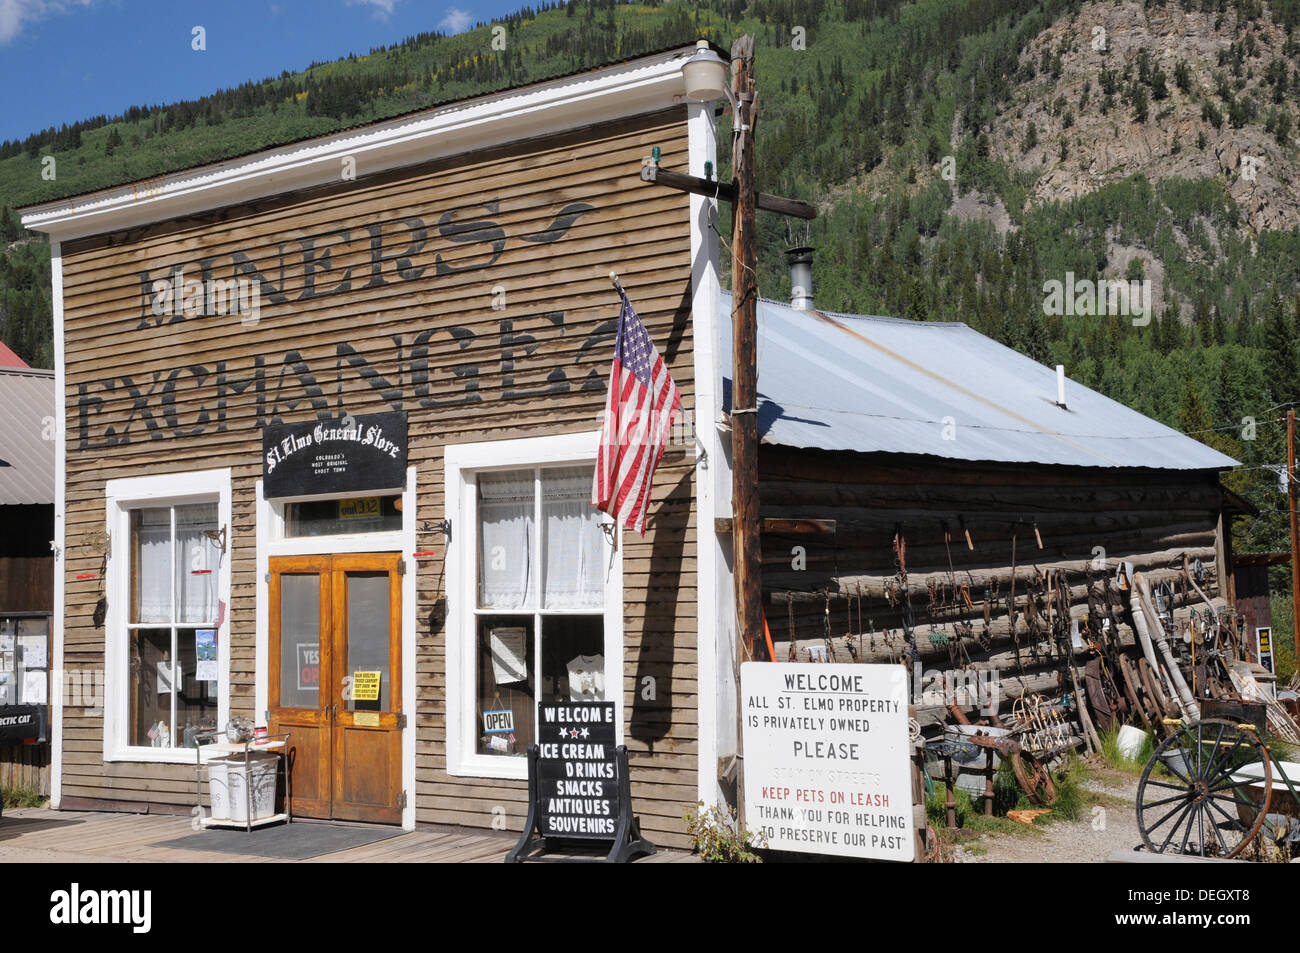 Original Miners Exchange, now open in the summer for tourists, St Elmo Ghost Town, Colorado. - Stock Image